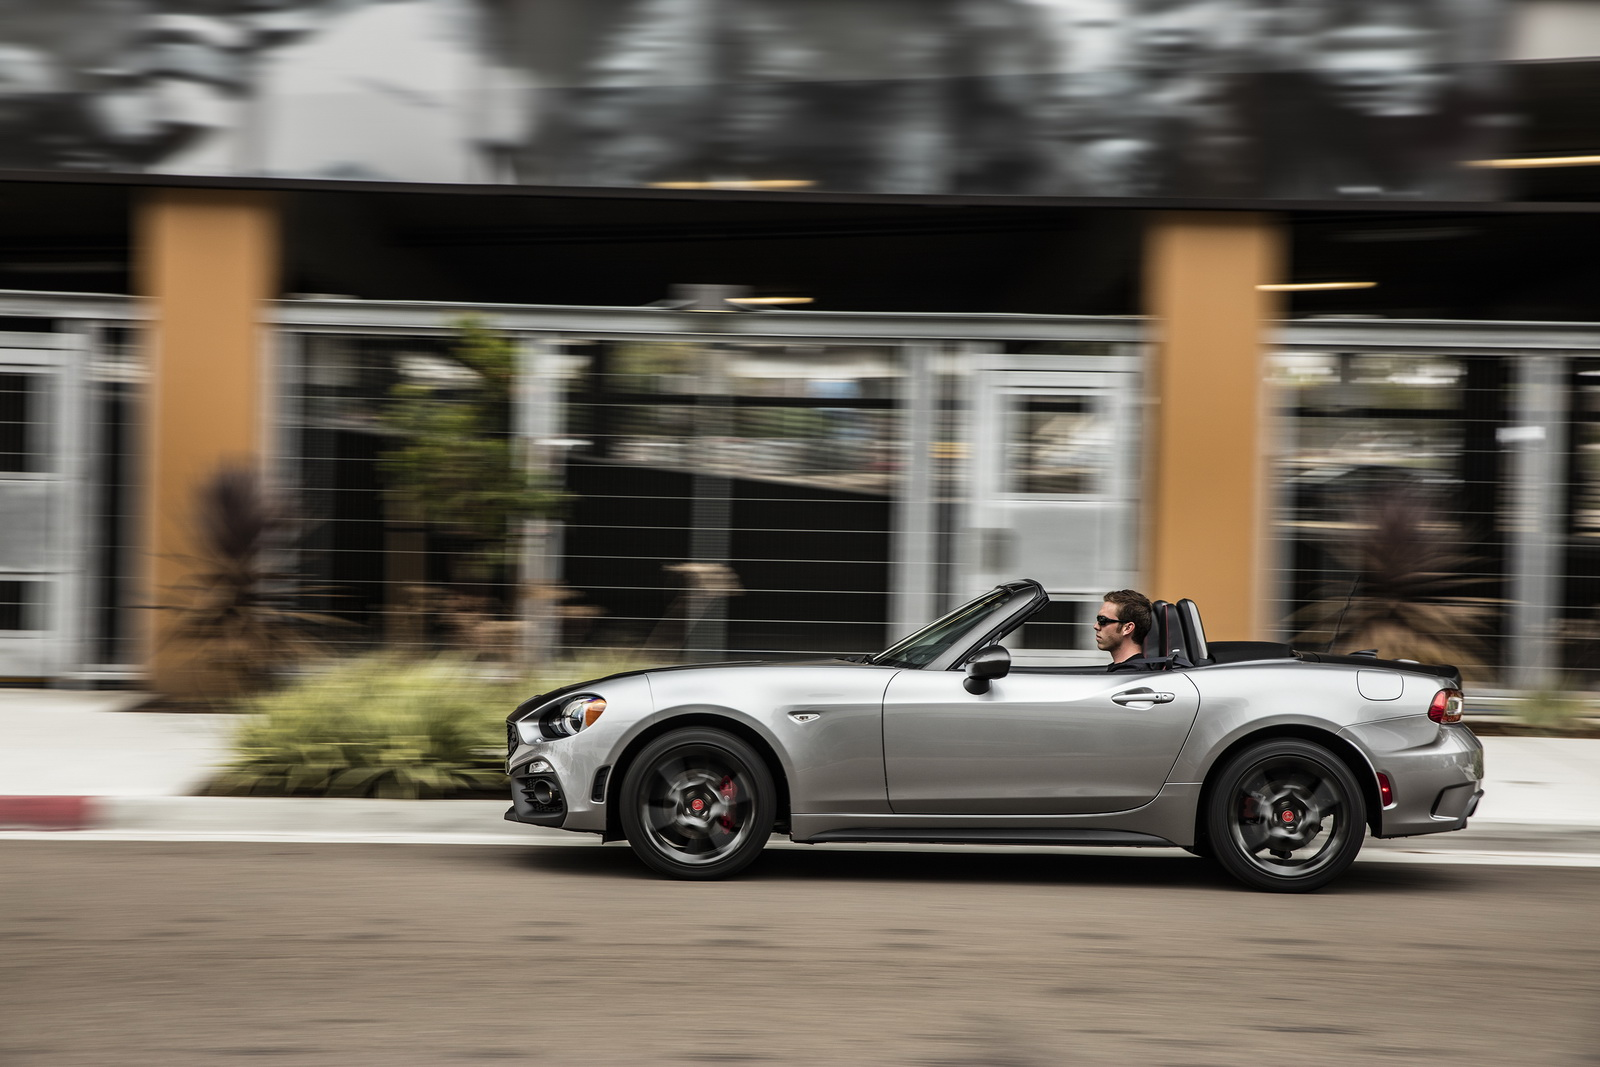 usa s 2017 fiat abarth 124 spider analyzed in 100 photos carscoops. Black Bedroom Furniture Sets. Home Design Ideas